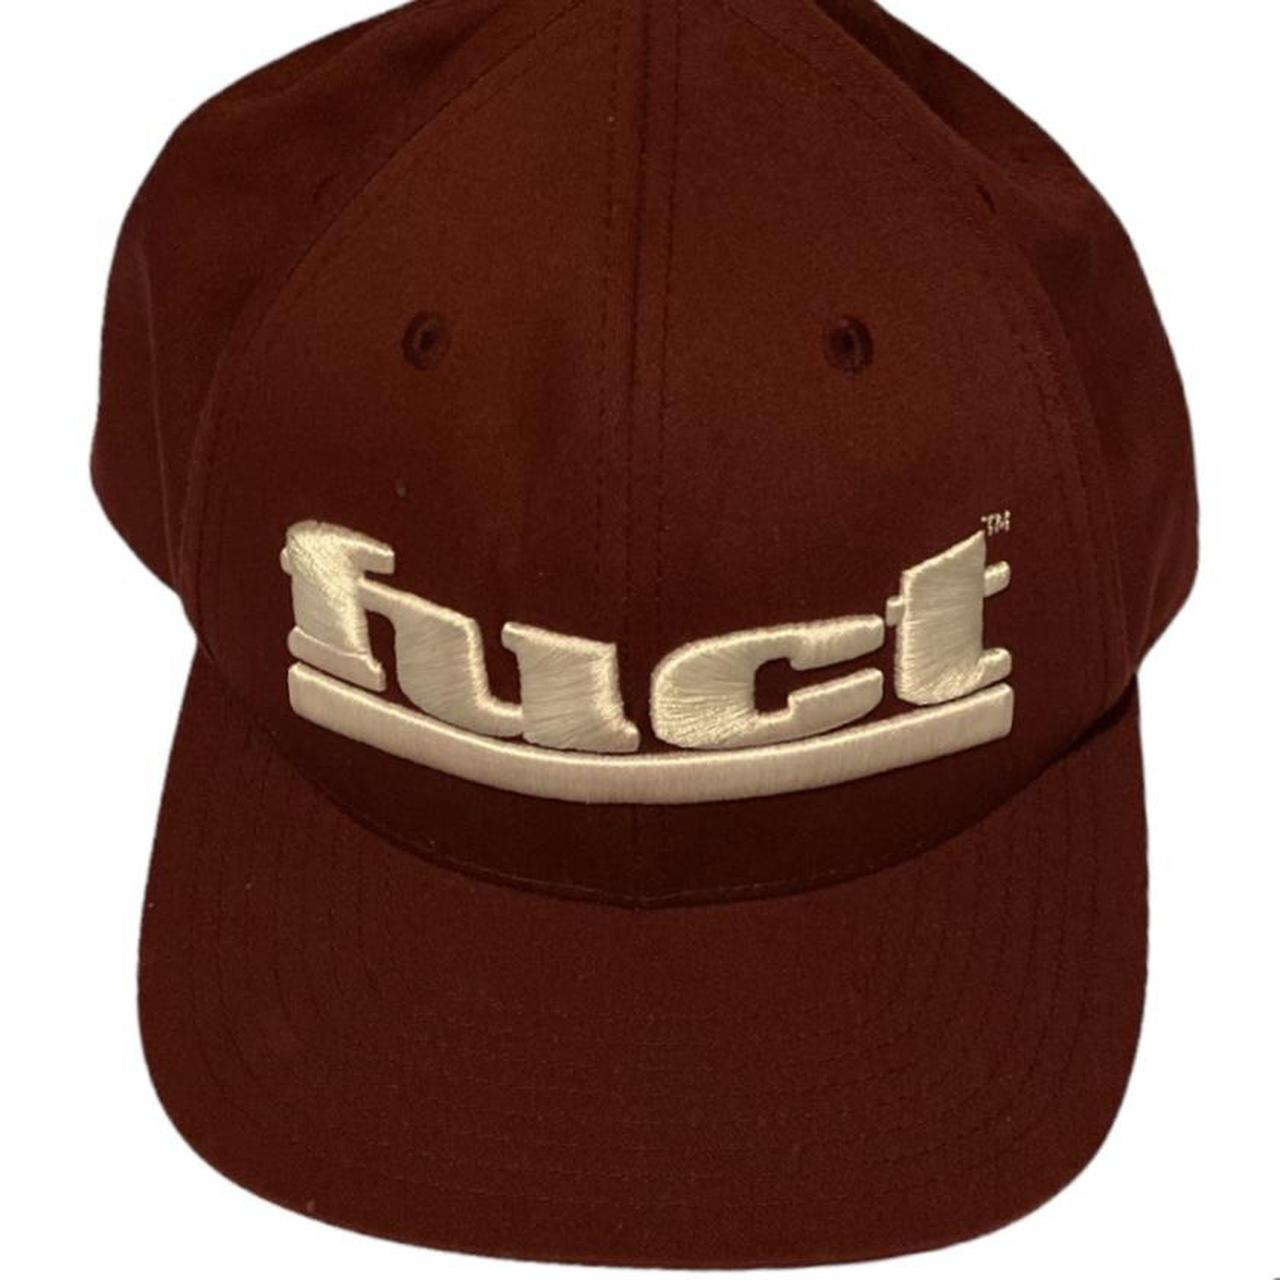 Product Image 1 - Maroon fuct brand hat.